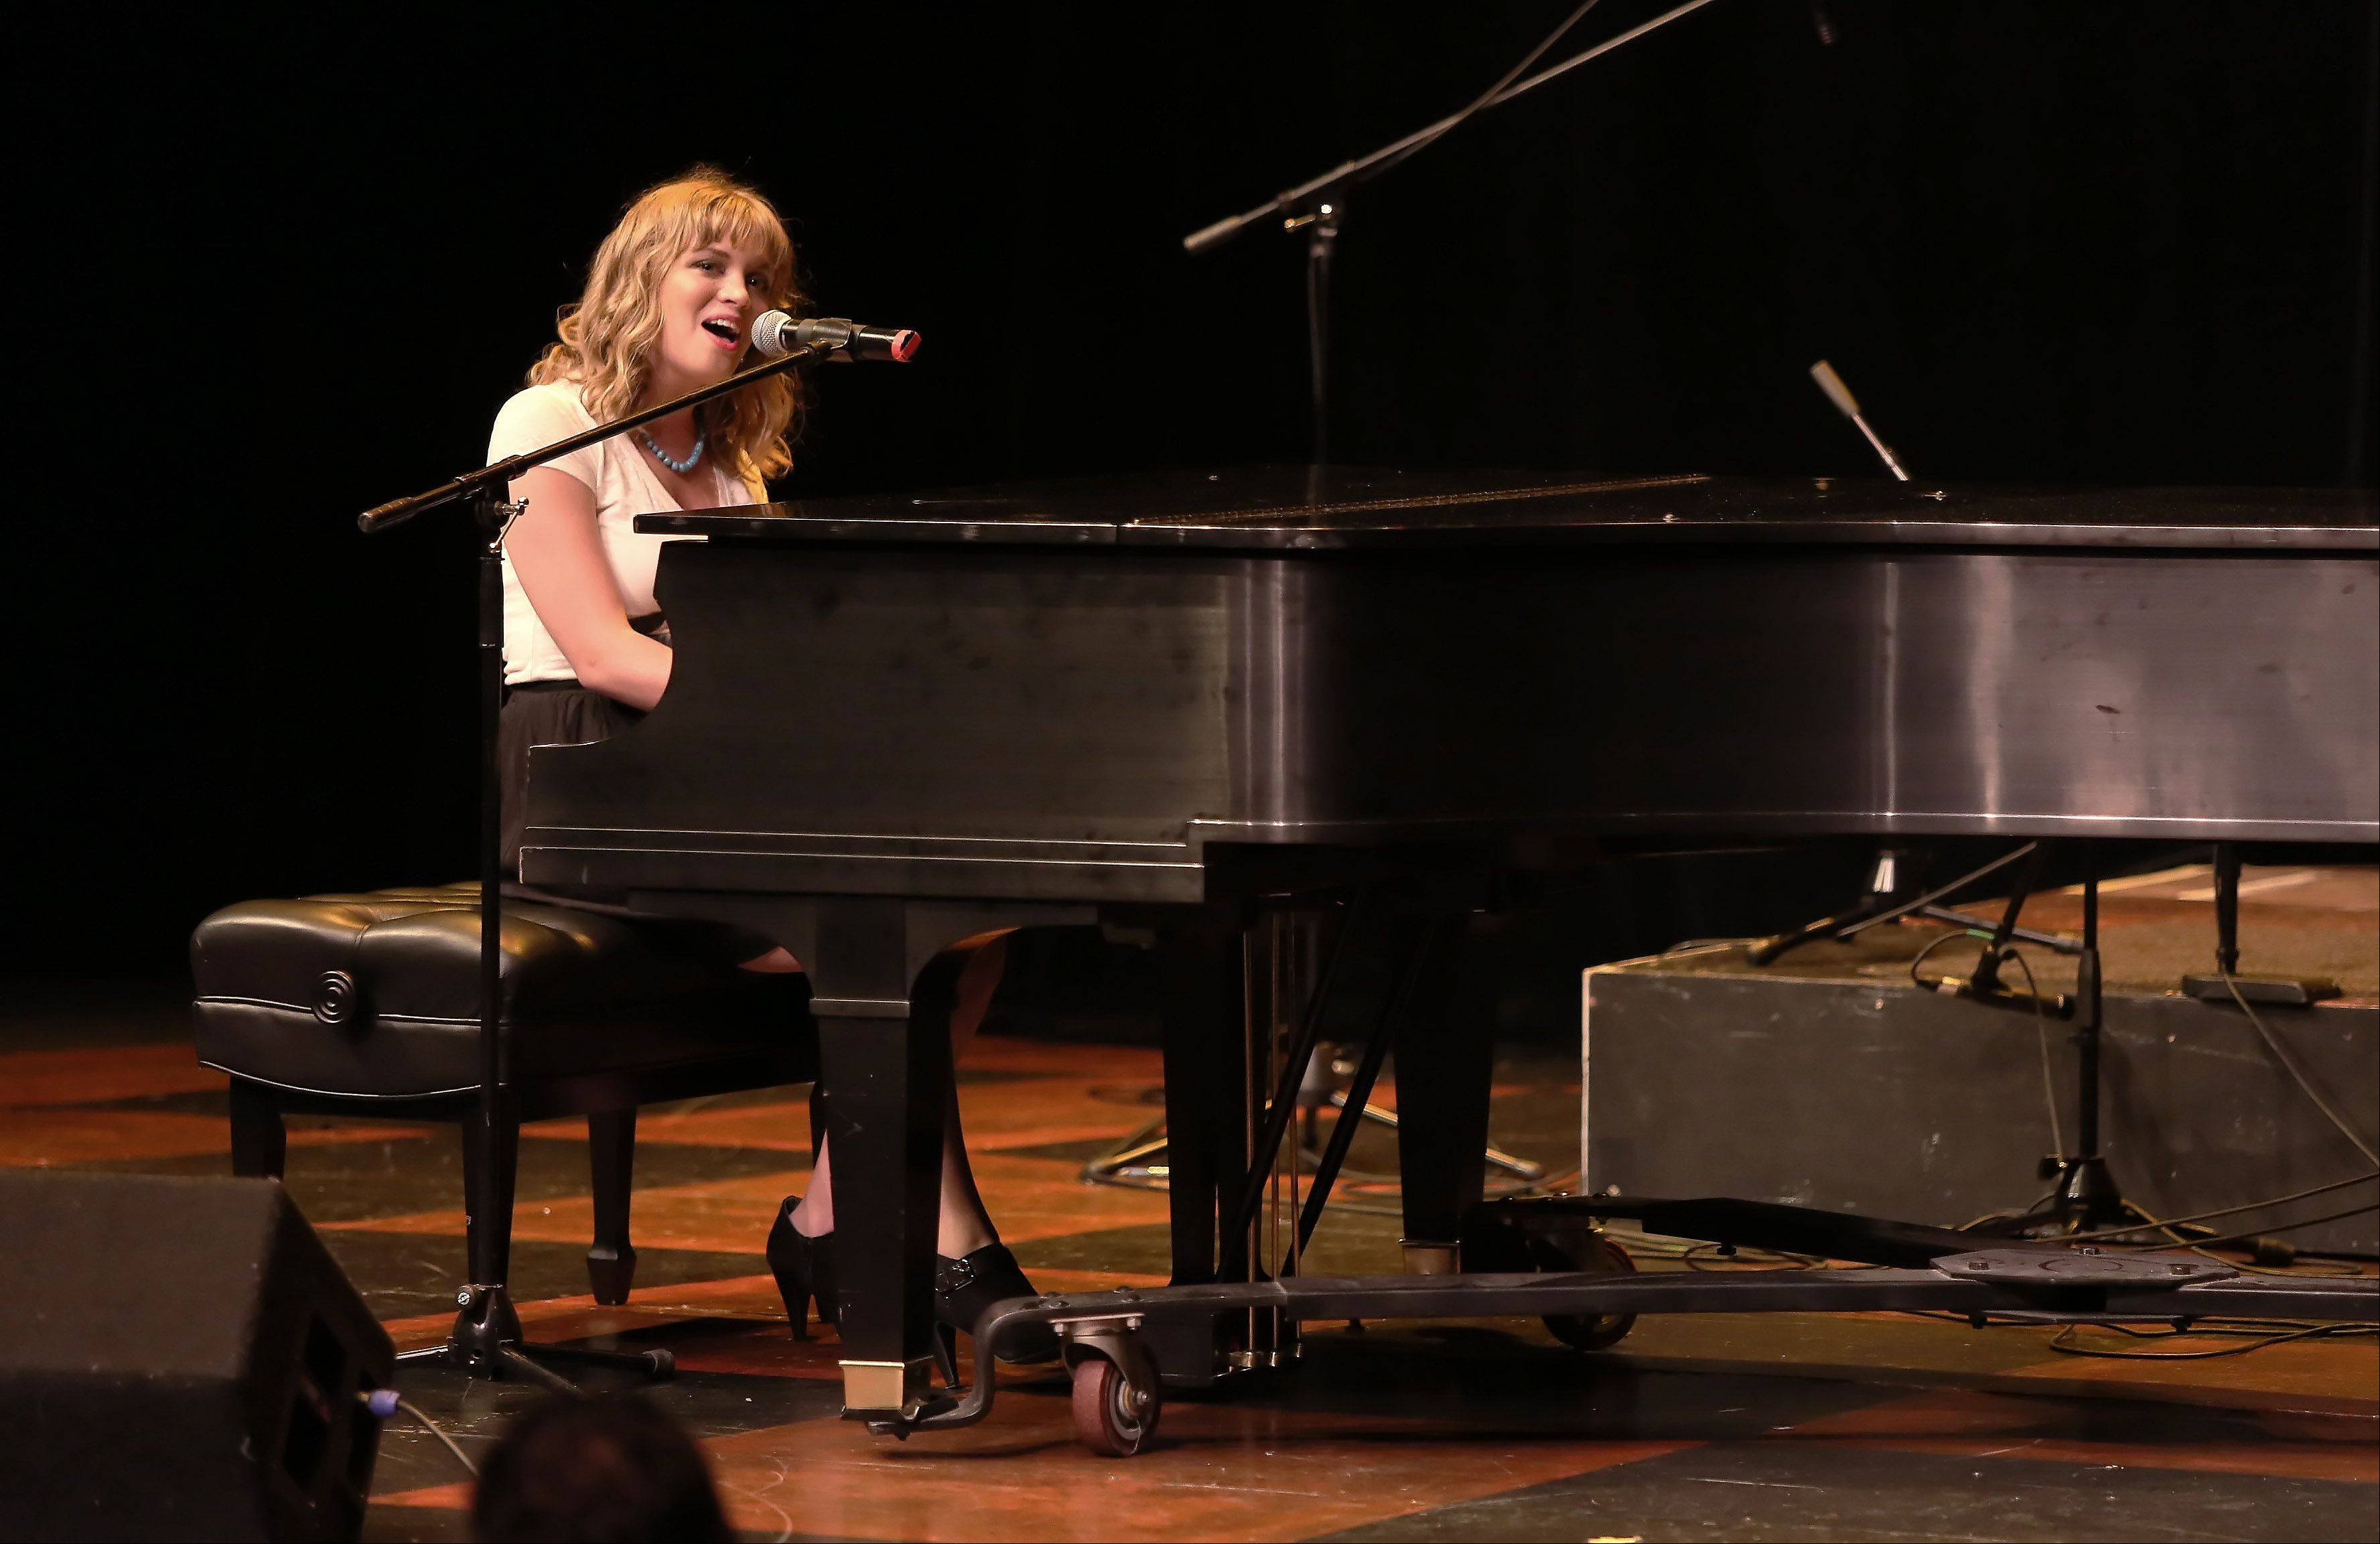 Kristin Brintnall of Wheaton performs during the first round of finalists for the Suburban Chicago's Got Talent competition Sunday night at the Metropolis Performing Arts Centre in Arlington Heights. The summer-long talent contest is presented by the Daily Herald and sponsored by the Arlington Heights Chamber of Commerce.